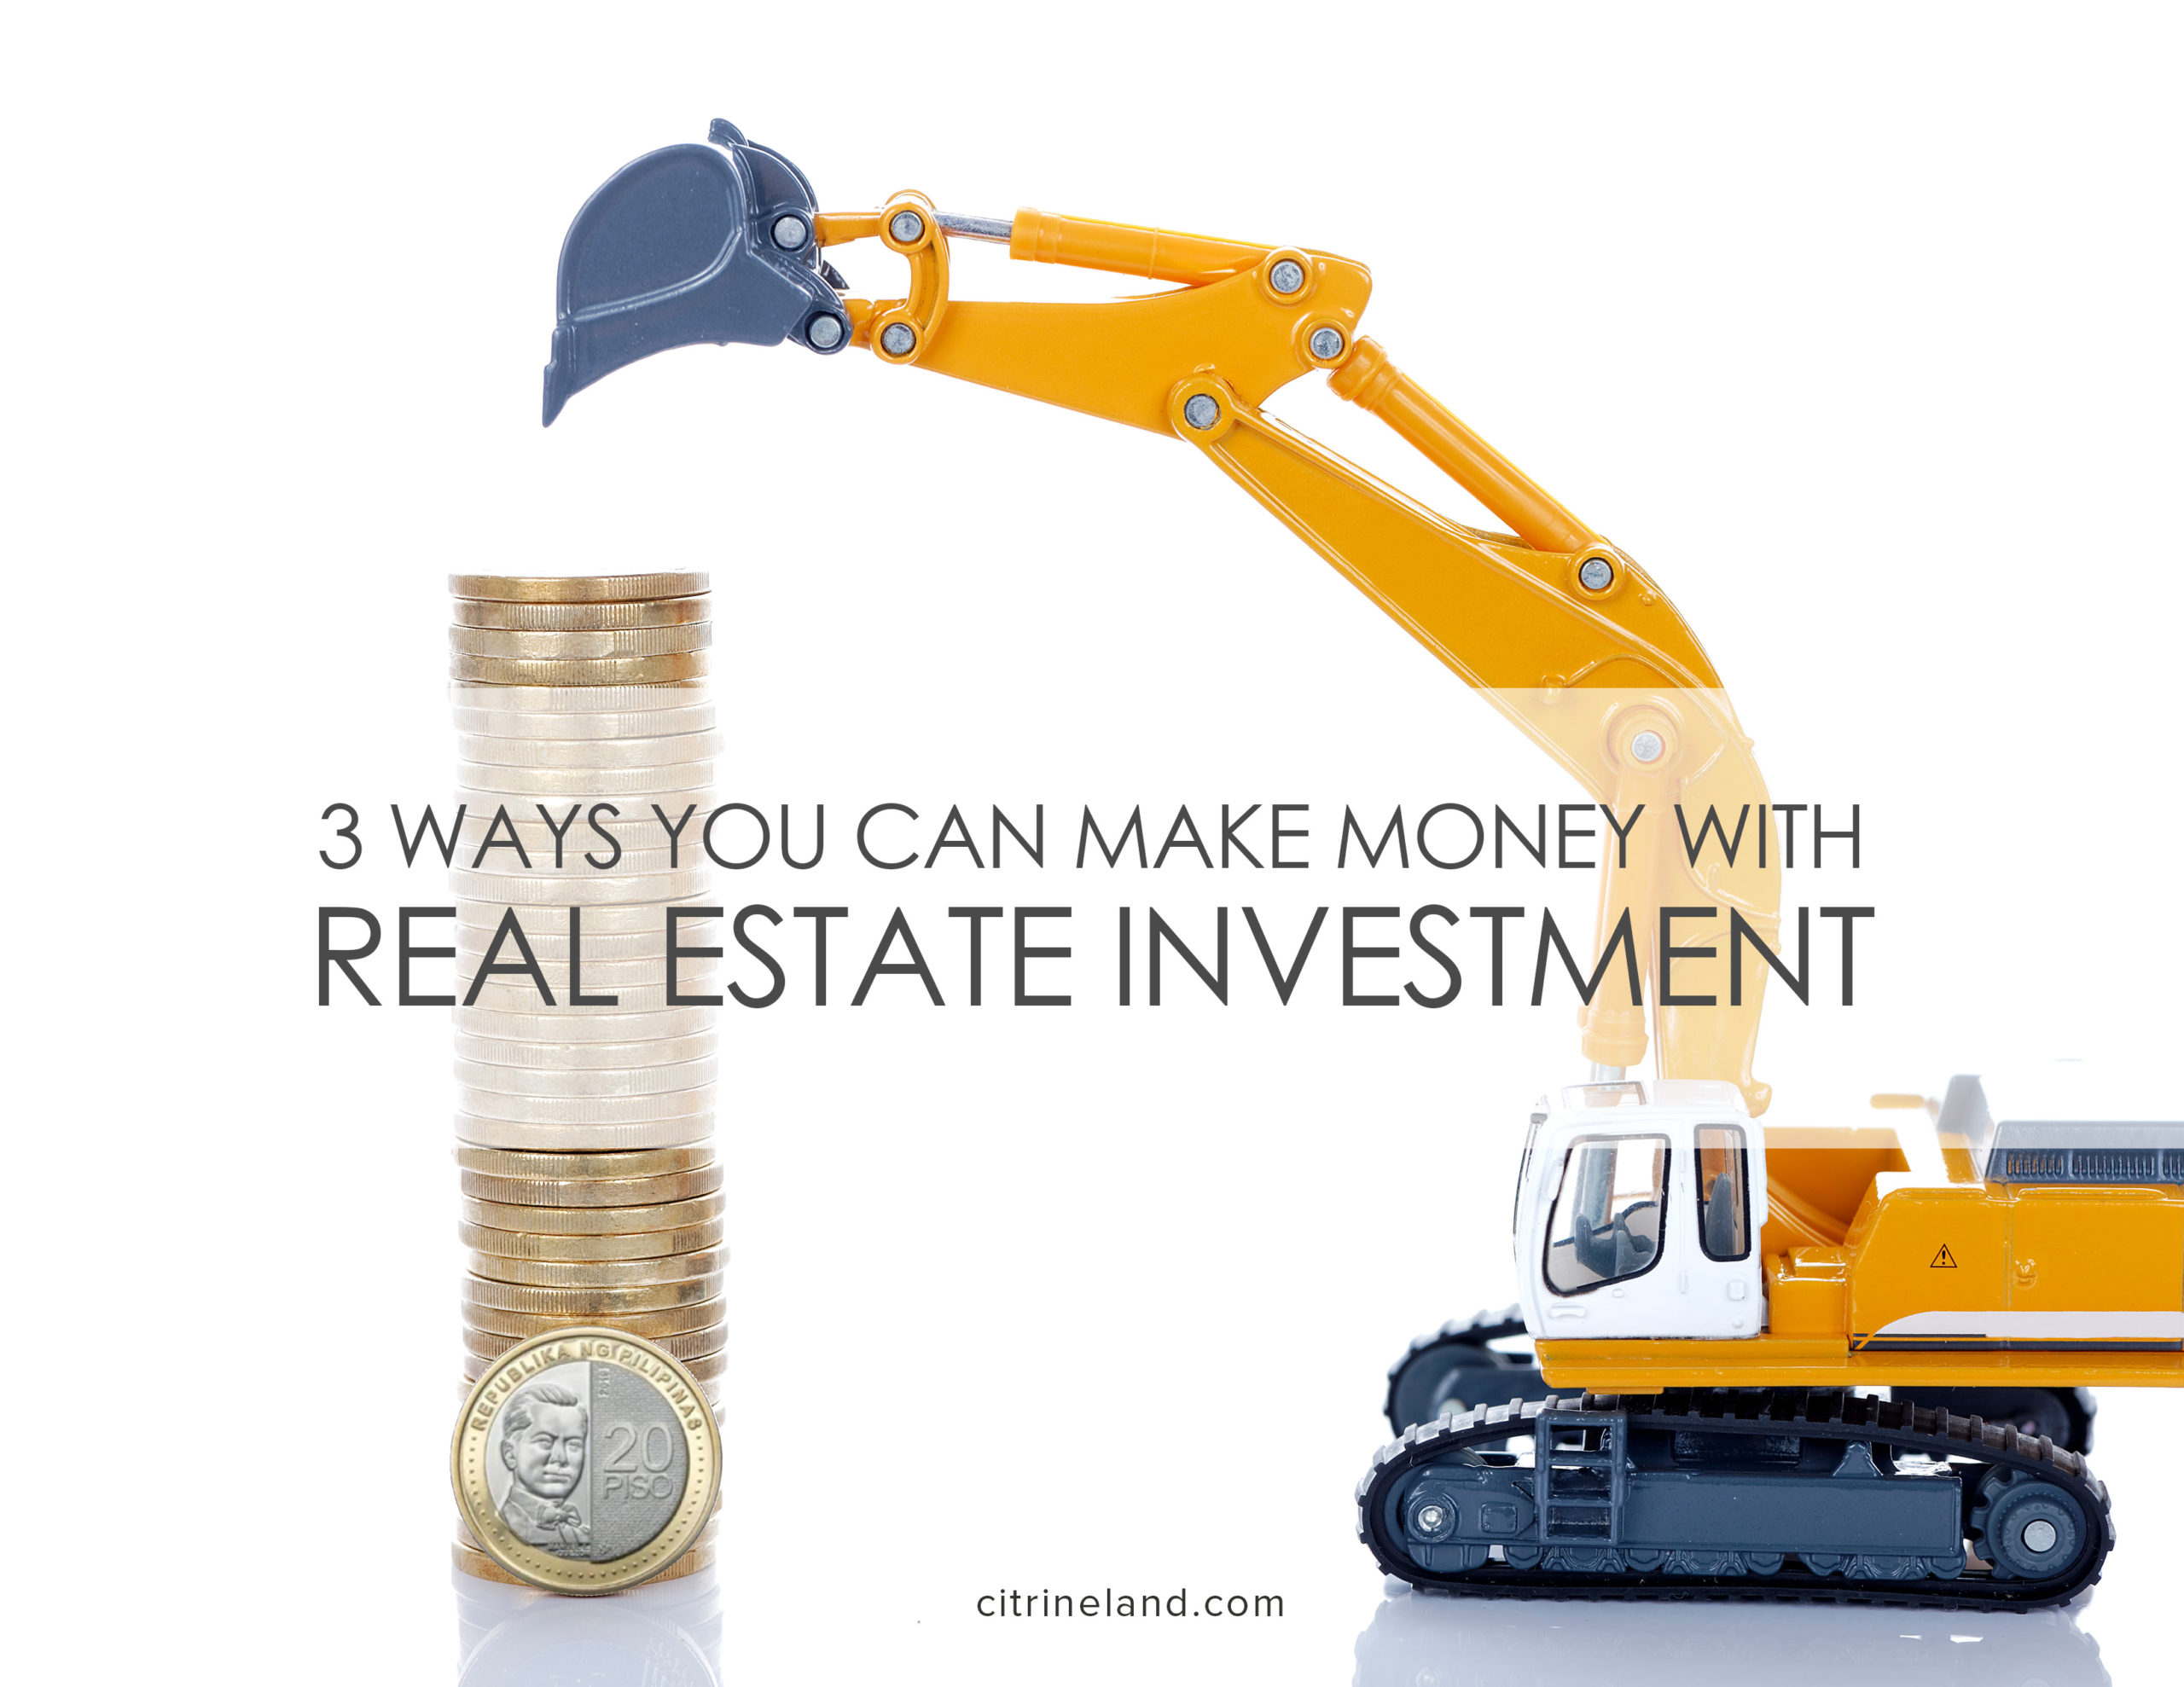 http://www.citrineland.com/3-awesome-ways-you-can-make-money-with-real-estate-investments/